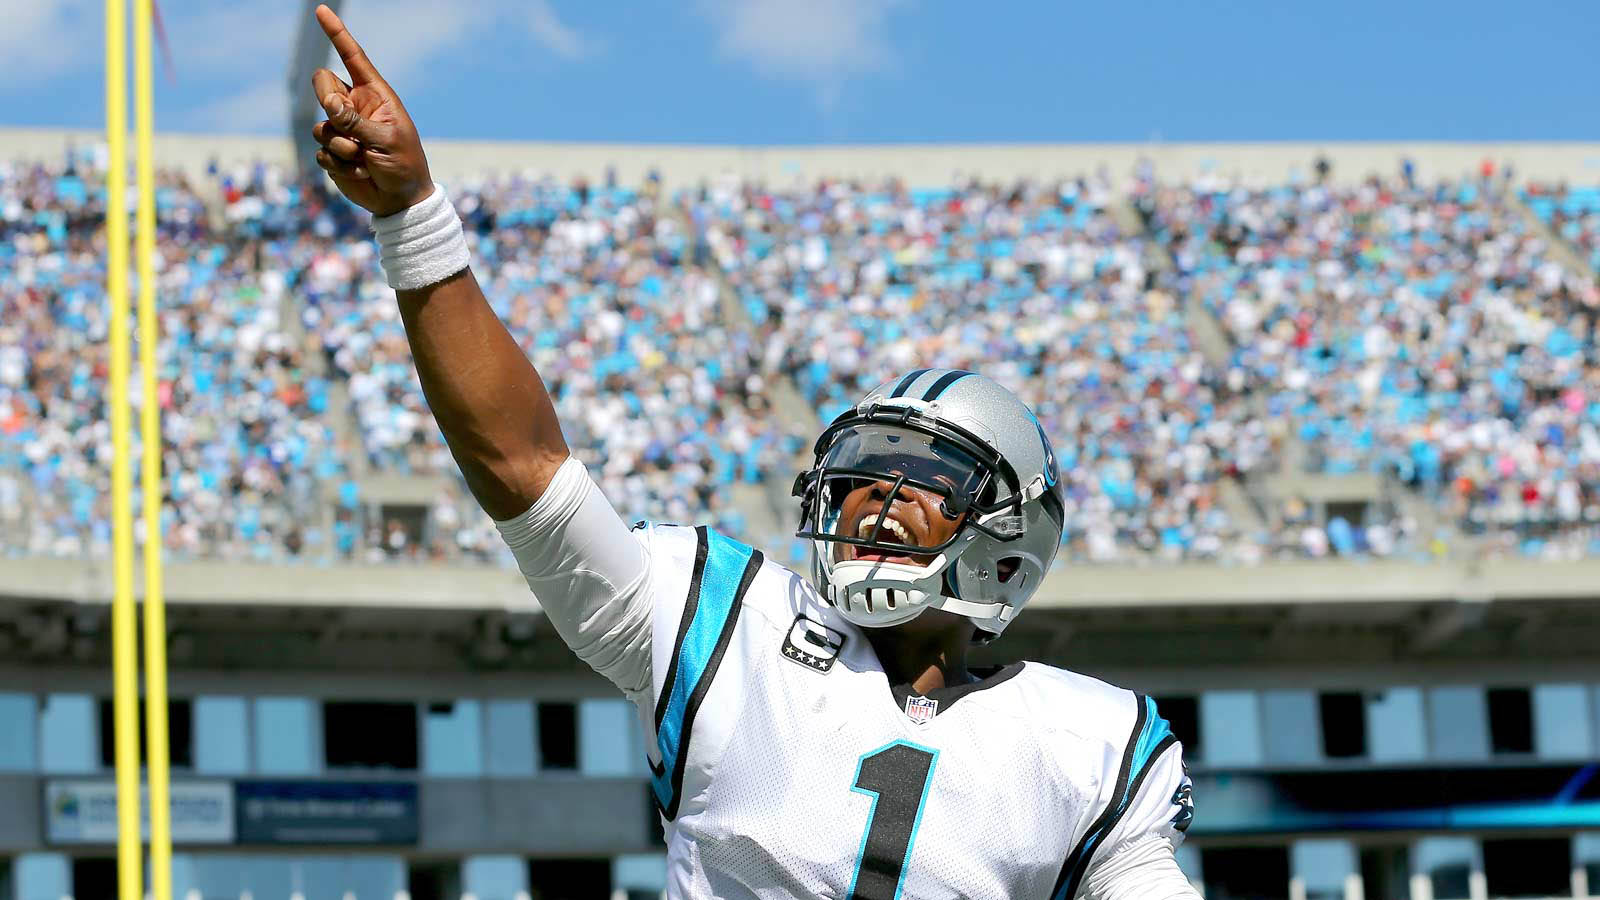 What Are The Panthers Score >> Cam Newton Dab Wallpaper HD - WallpaperSafari